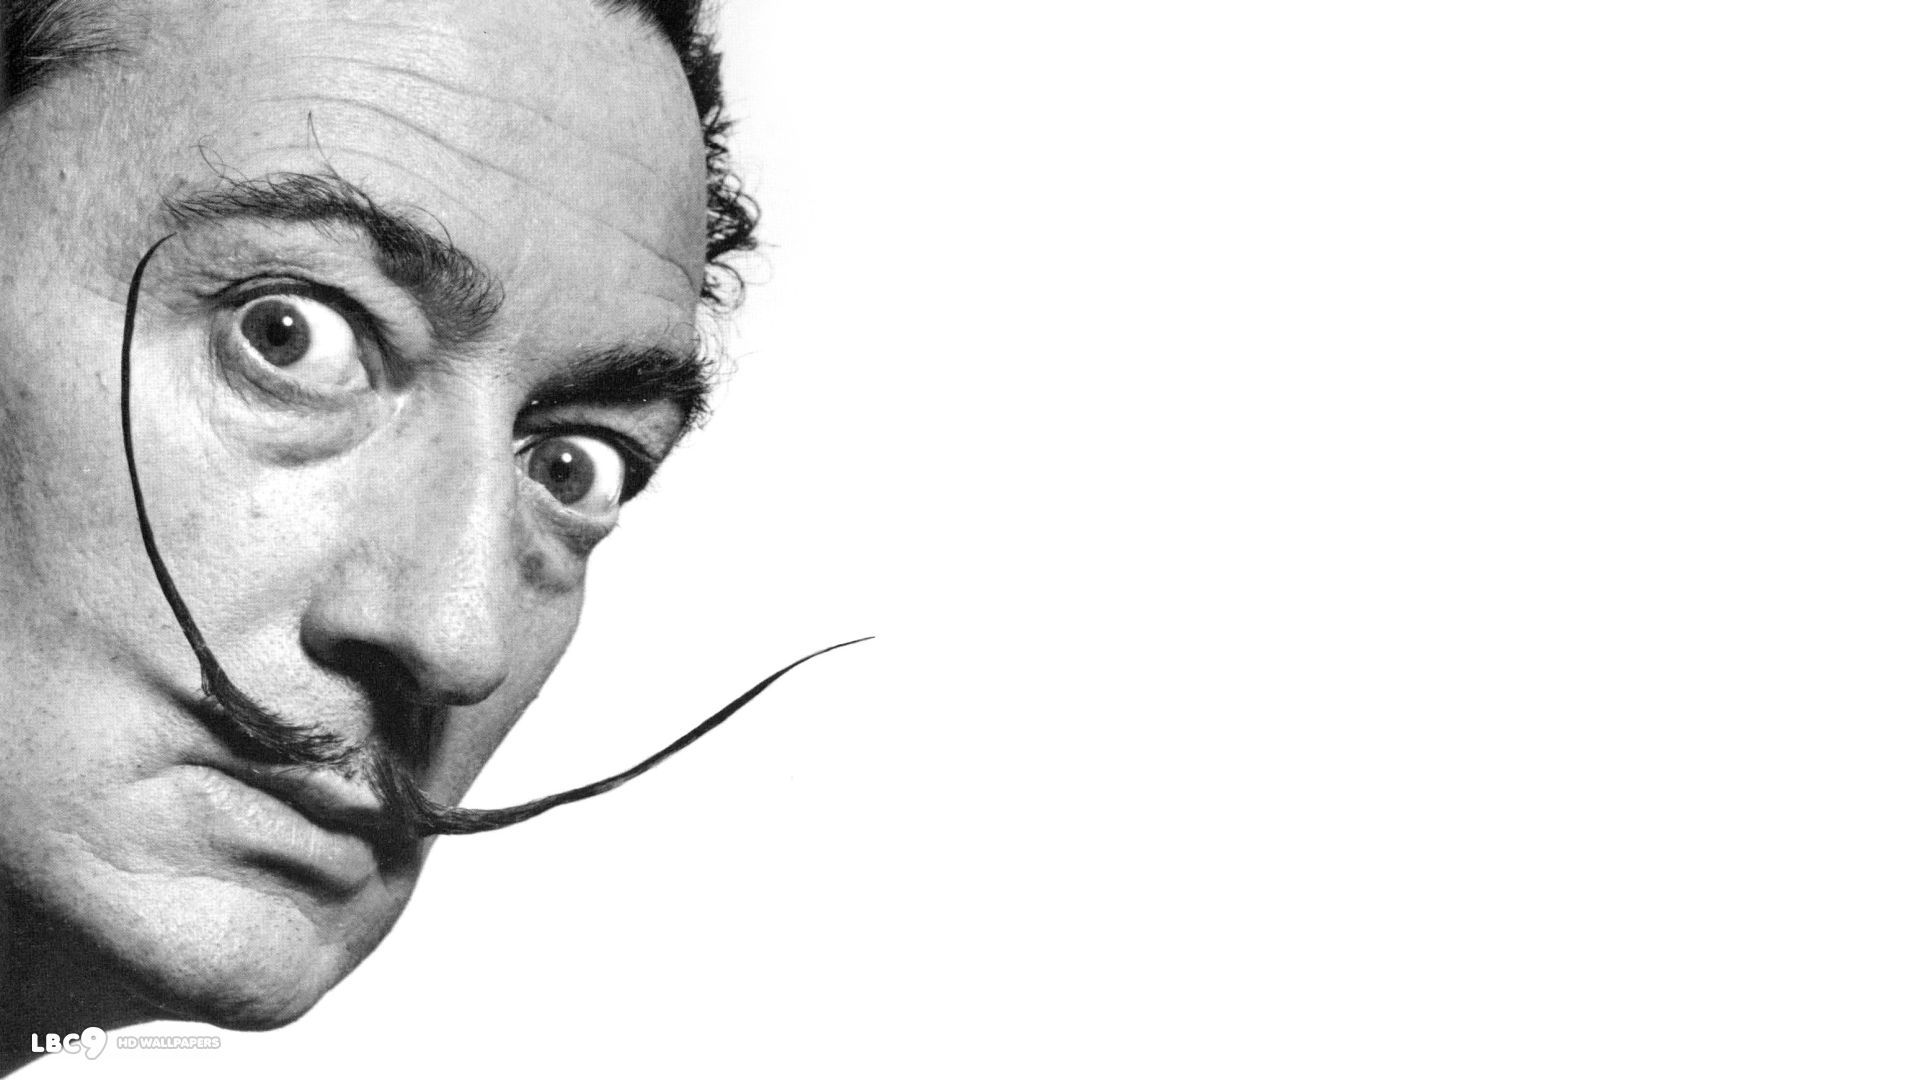 Dali was the master of scandal, hype and spectacle and in his autobiographies he admits to violence, cannibalism and necrophilia among a mountain of other ...